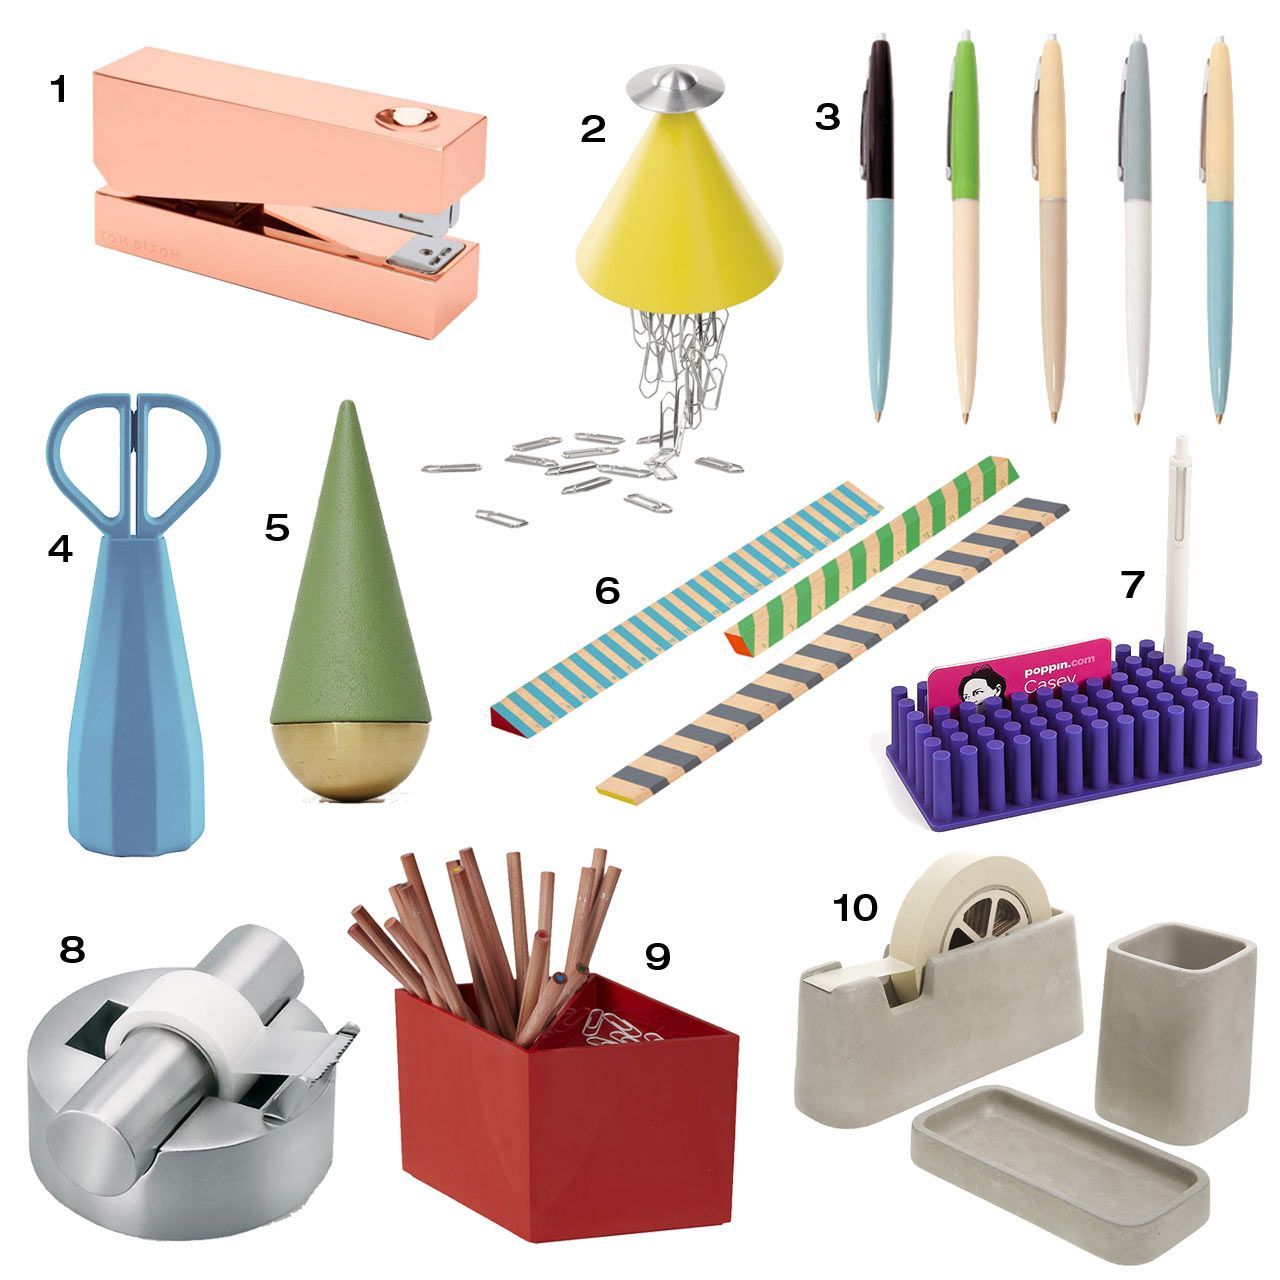 10 Modern Office Supplies To Up Your Desk Game Office Supplies